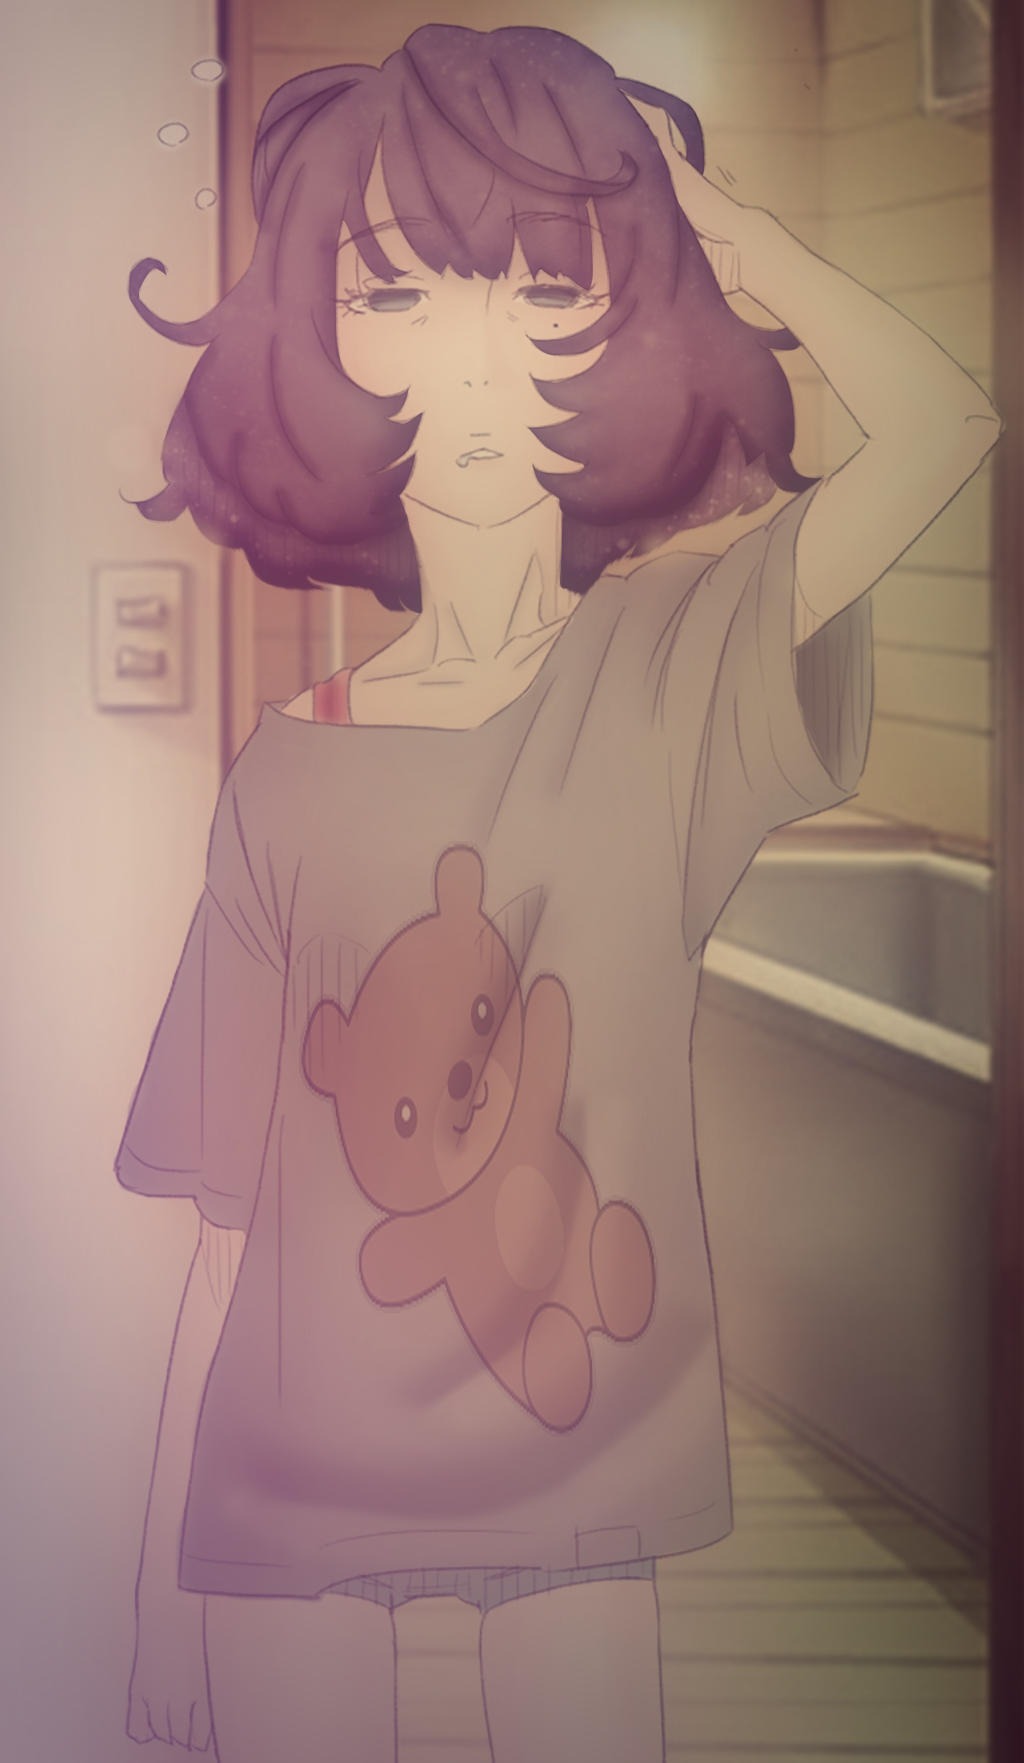 Anime girl waking up (10) by KyoneZN on DeviantArt